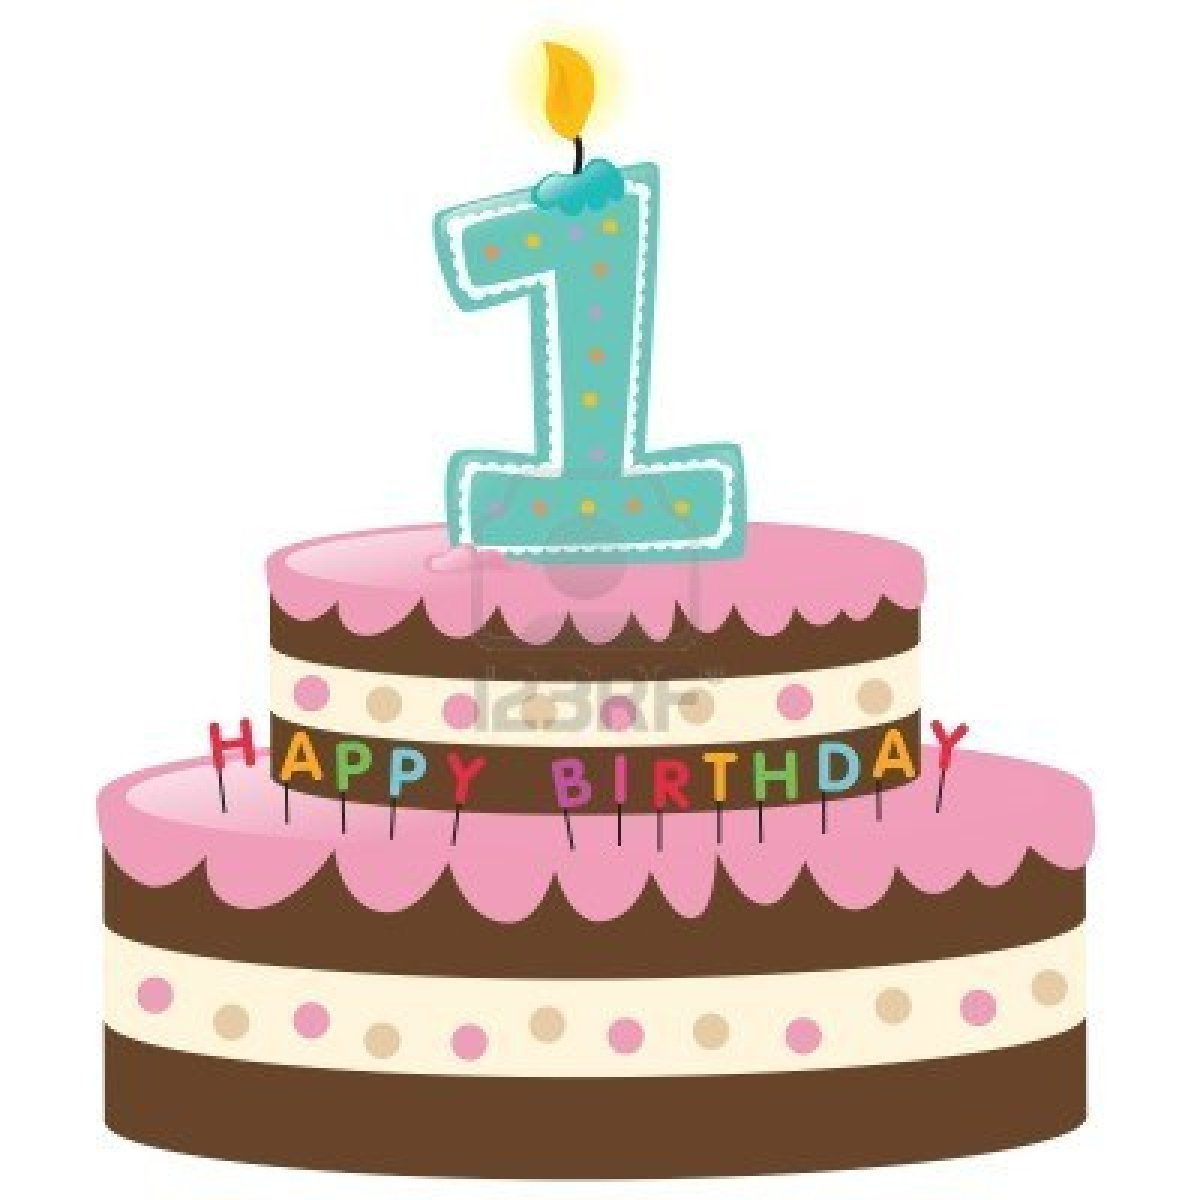 1 year cake clipart clipart stock 1 year old birthday cake clipart - ClipartFest clipart stock